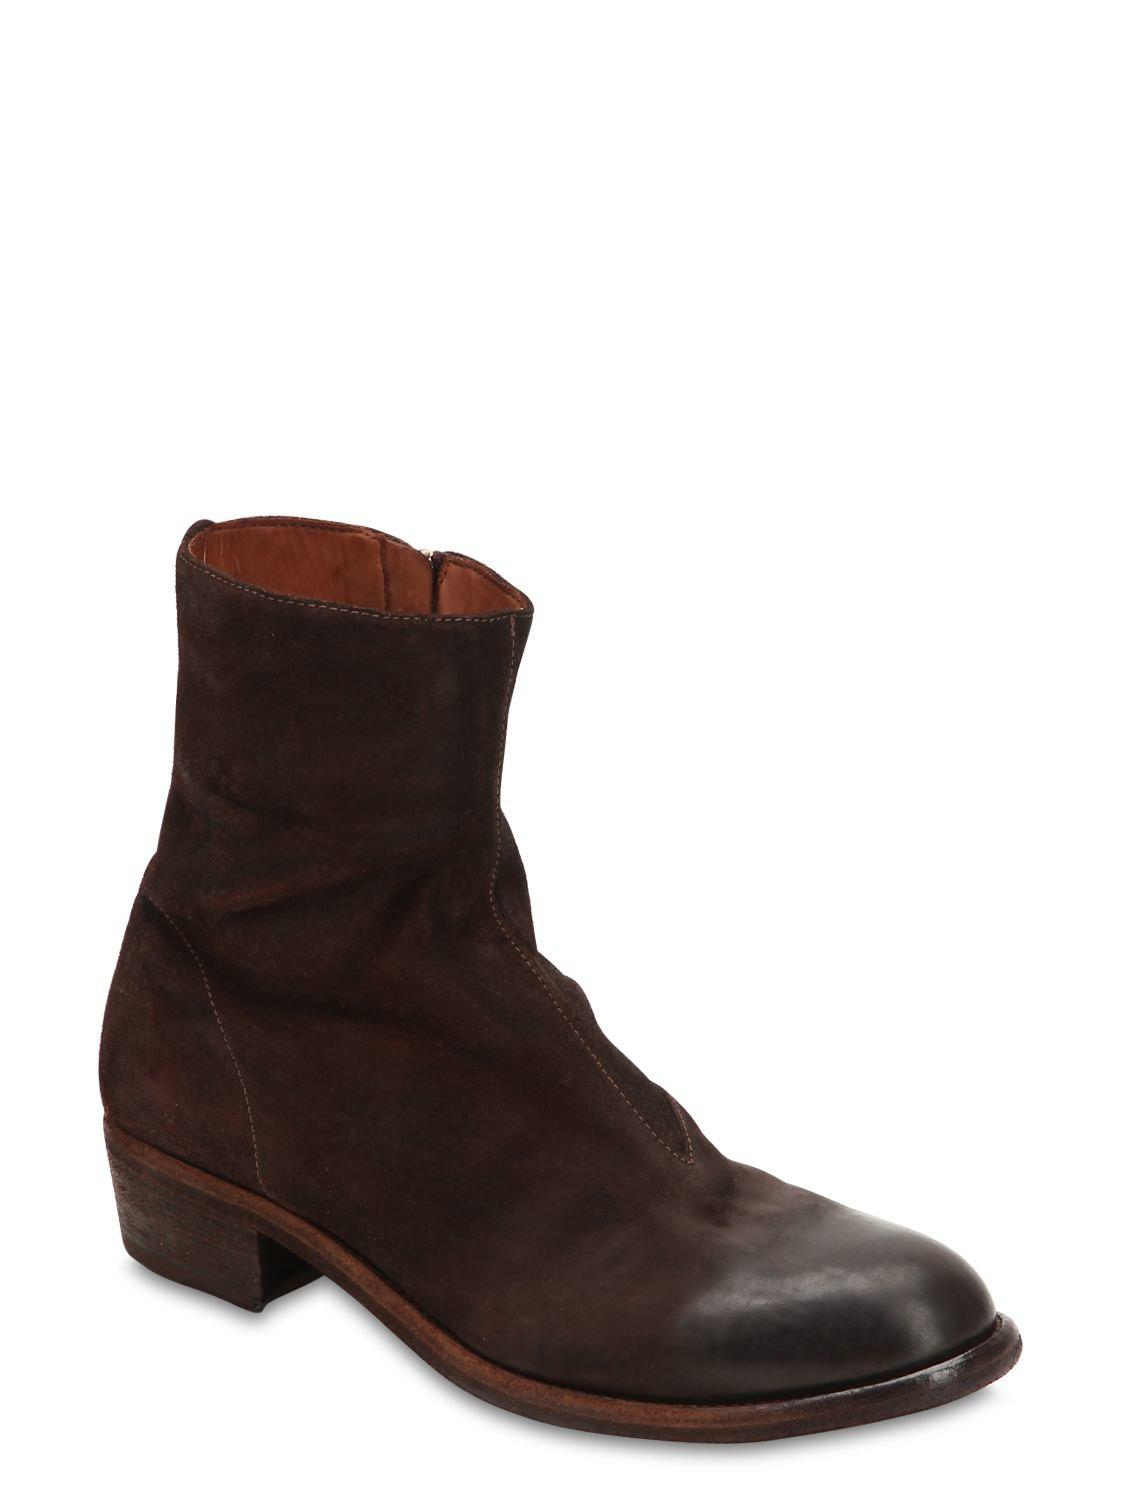 0edf73474ea8d Lyst - Officine Creative Ponti 001 Reversed Leather Boots in Brown for Men